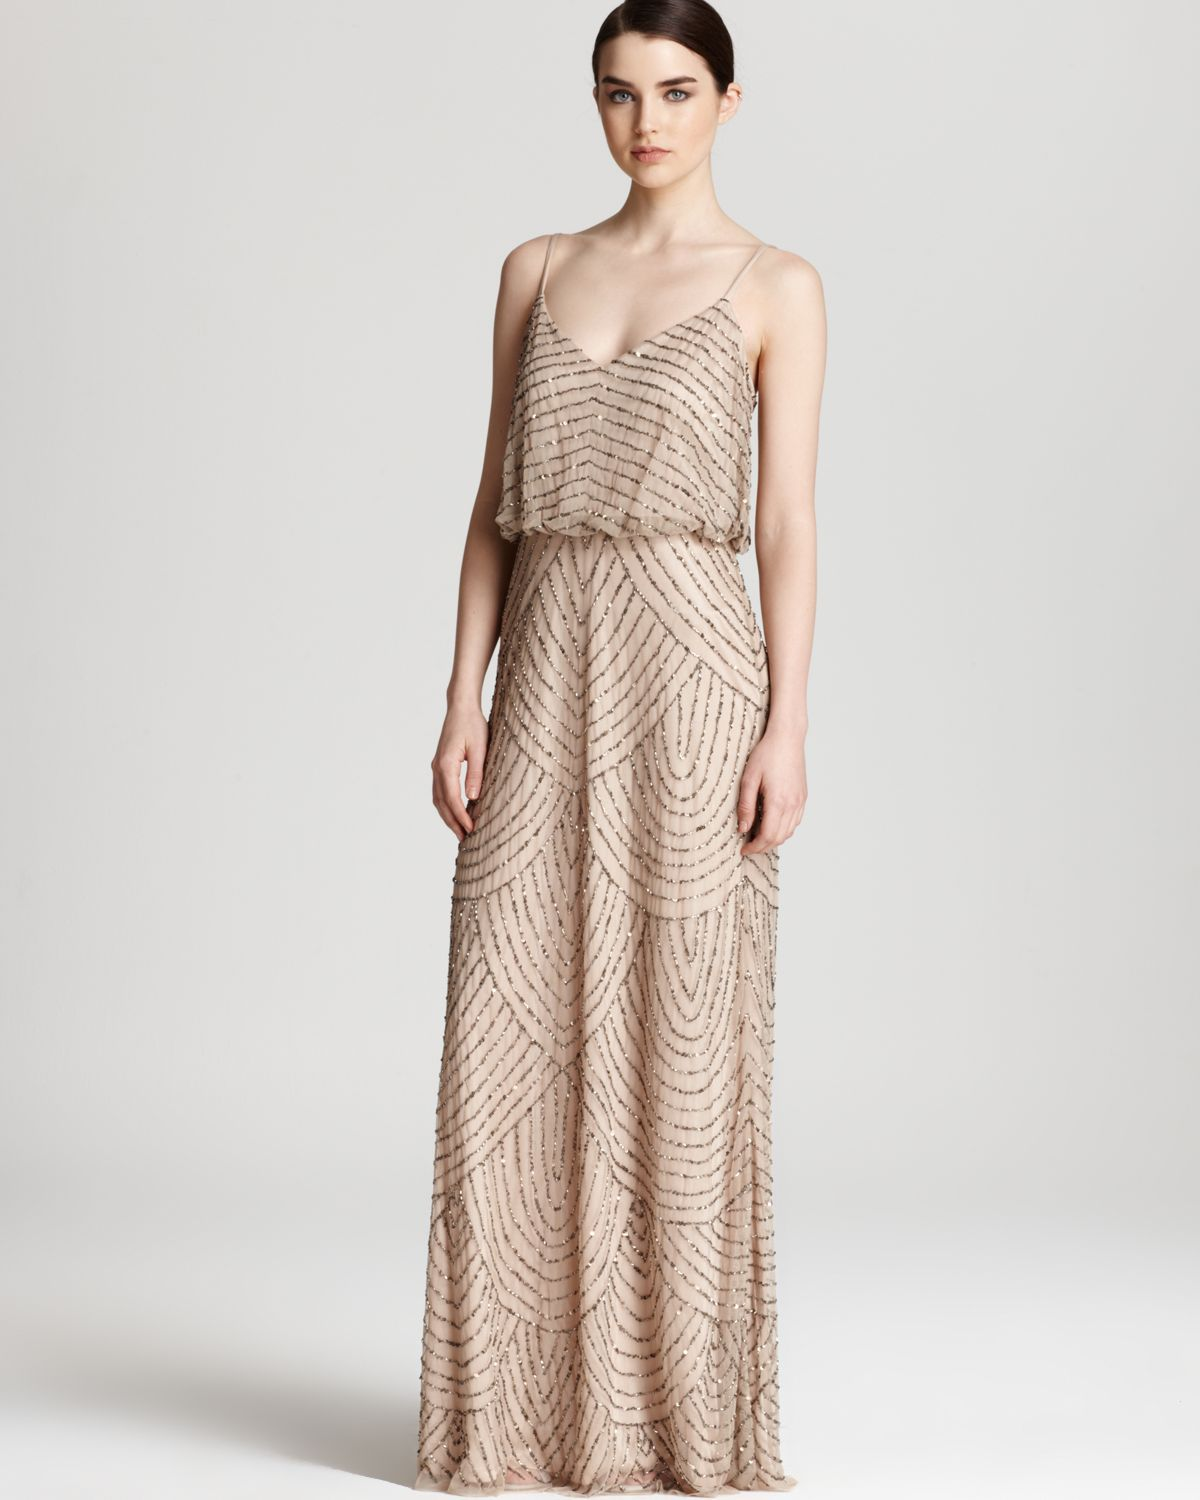 Adrianna Papell Beaded Dress Long Blouson In Brown